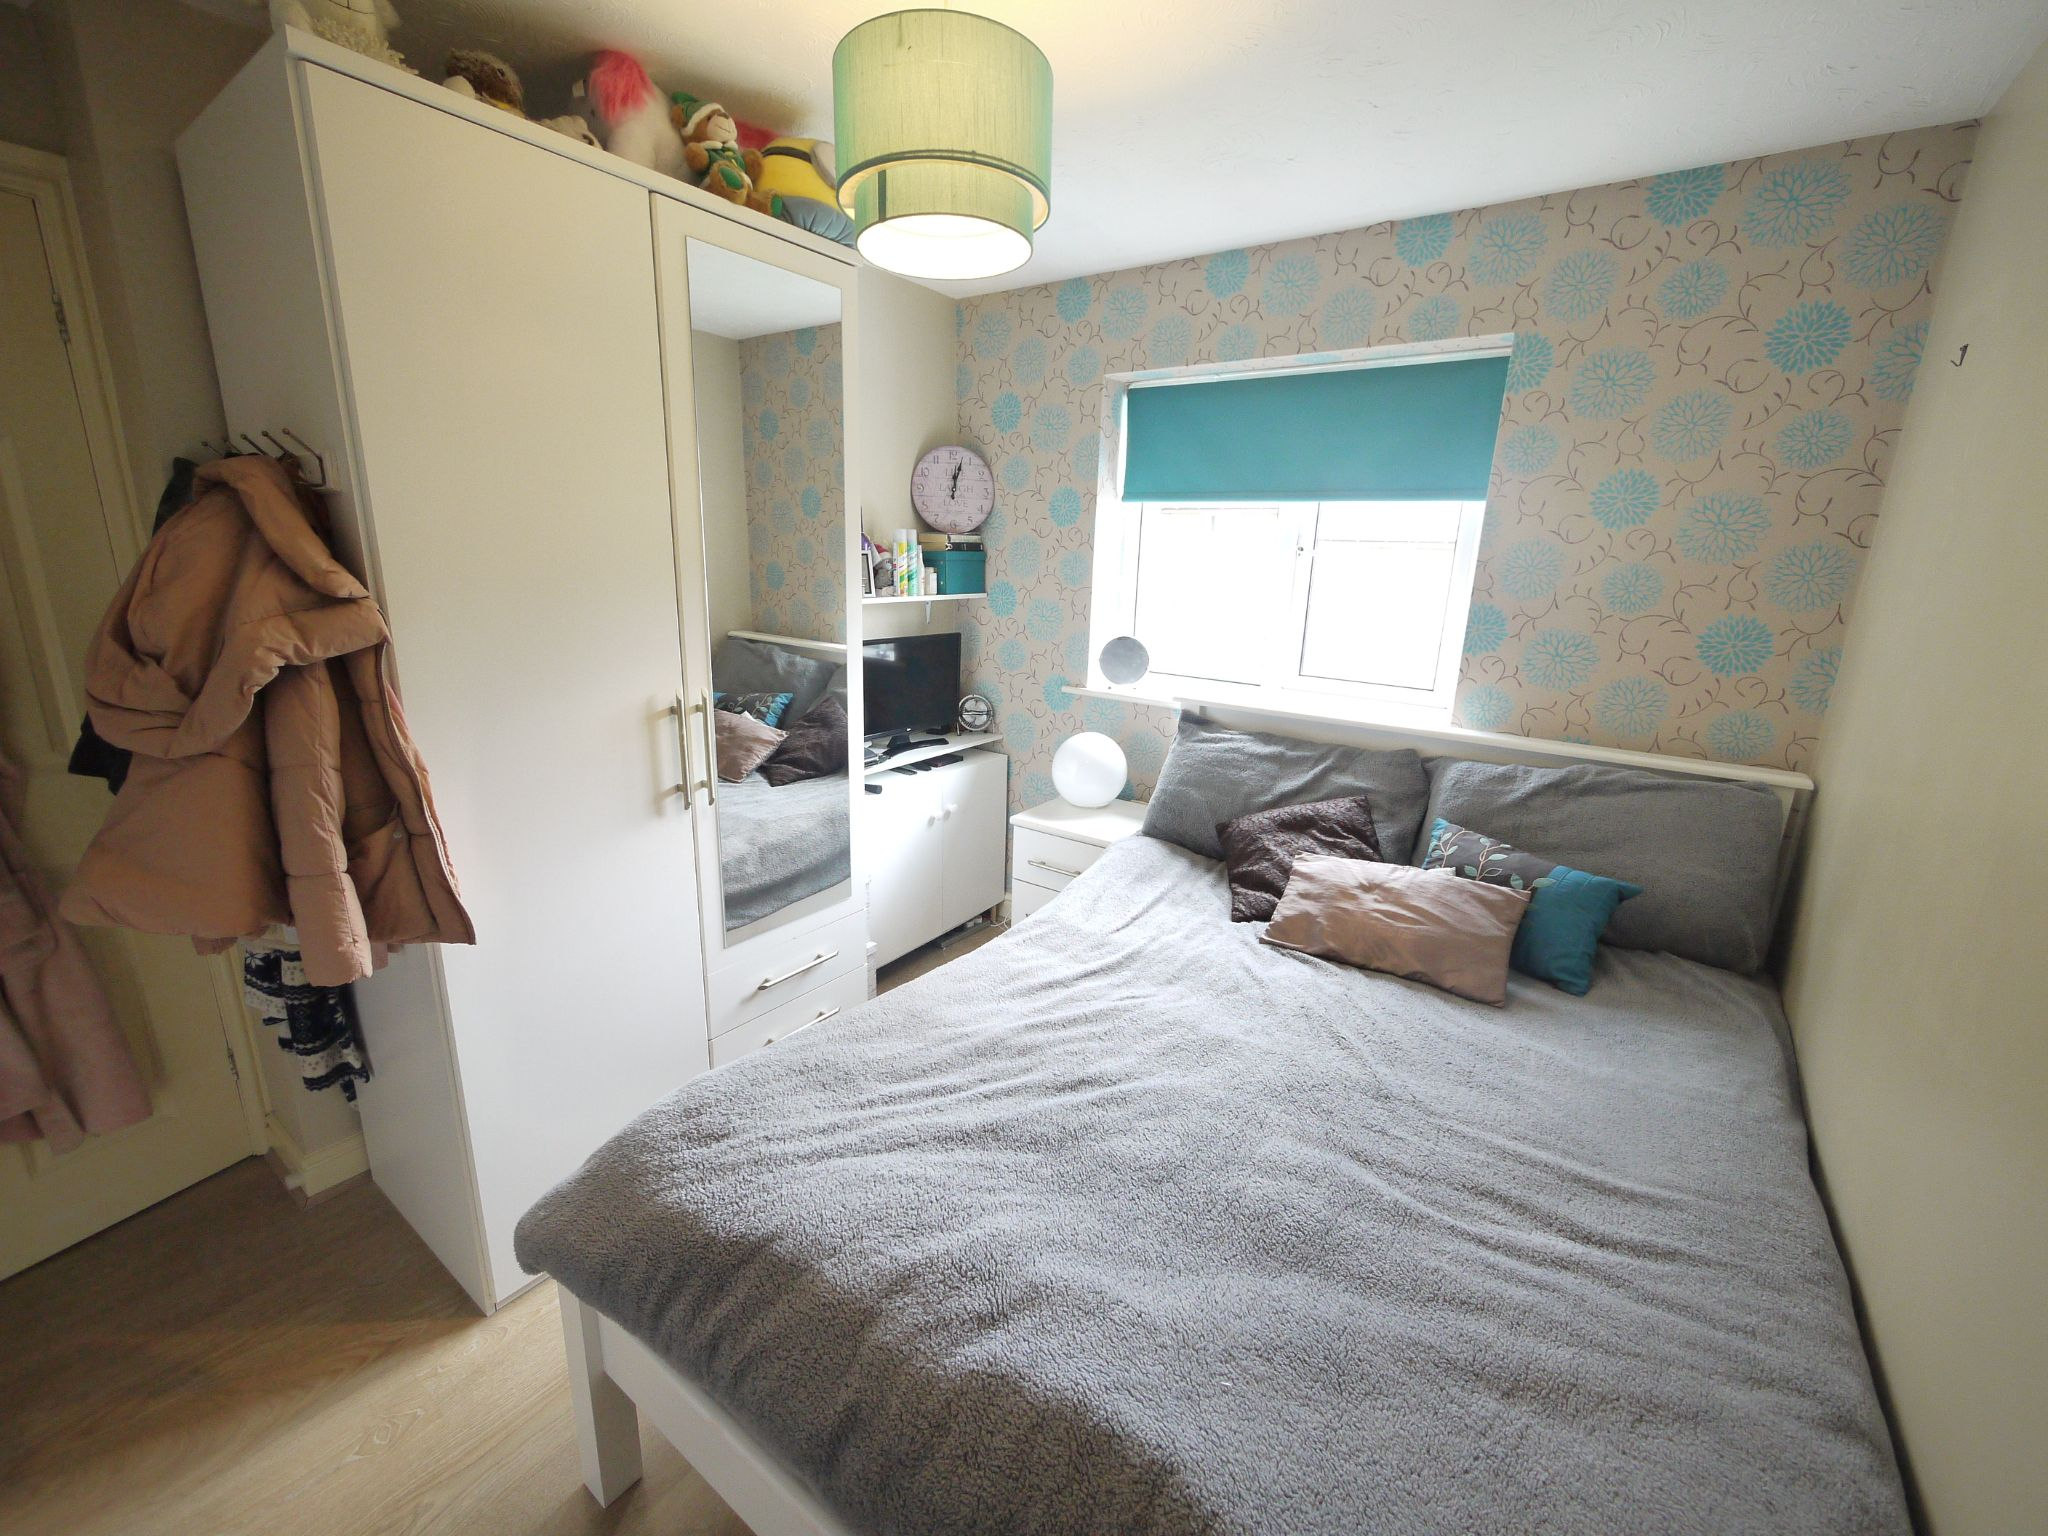 3 bedroom semi-detached house SSTC in Brighouse - Bedroom 2.